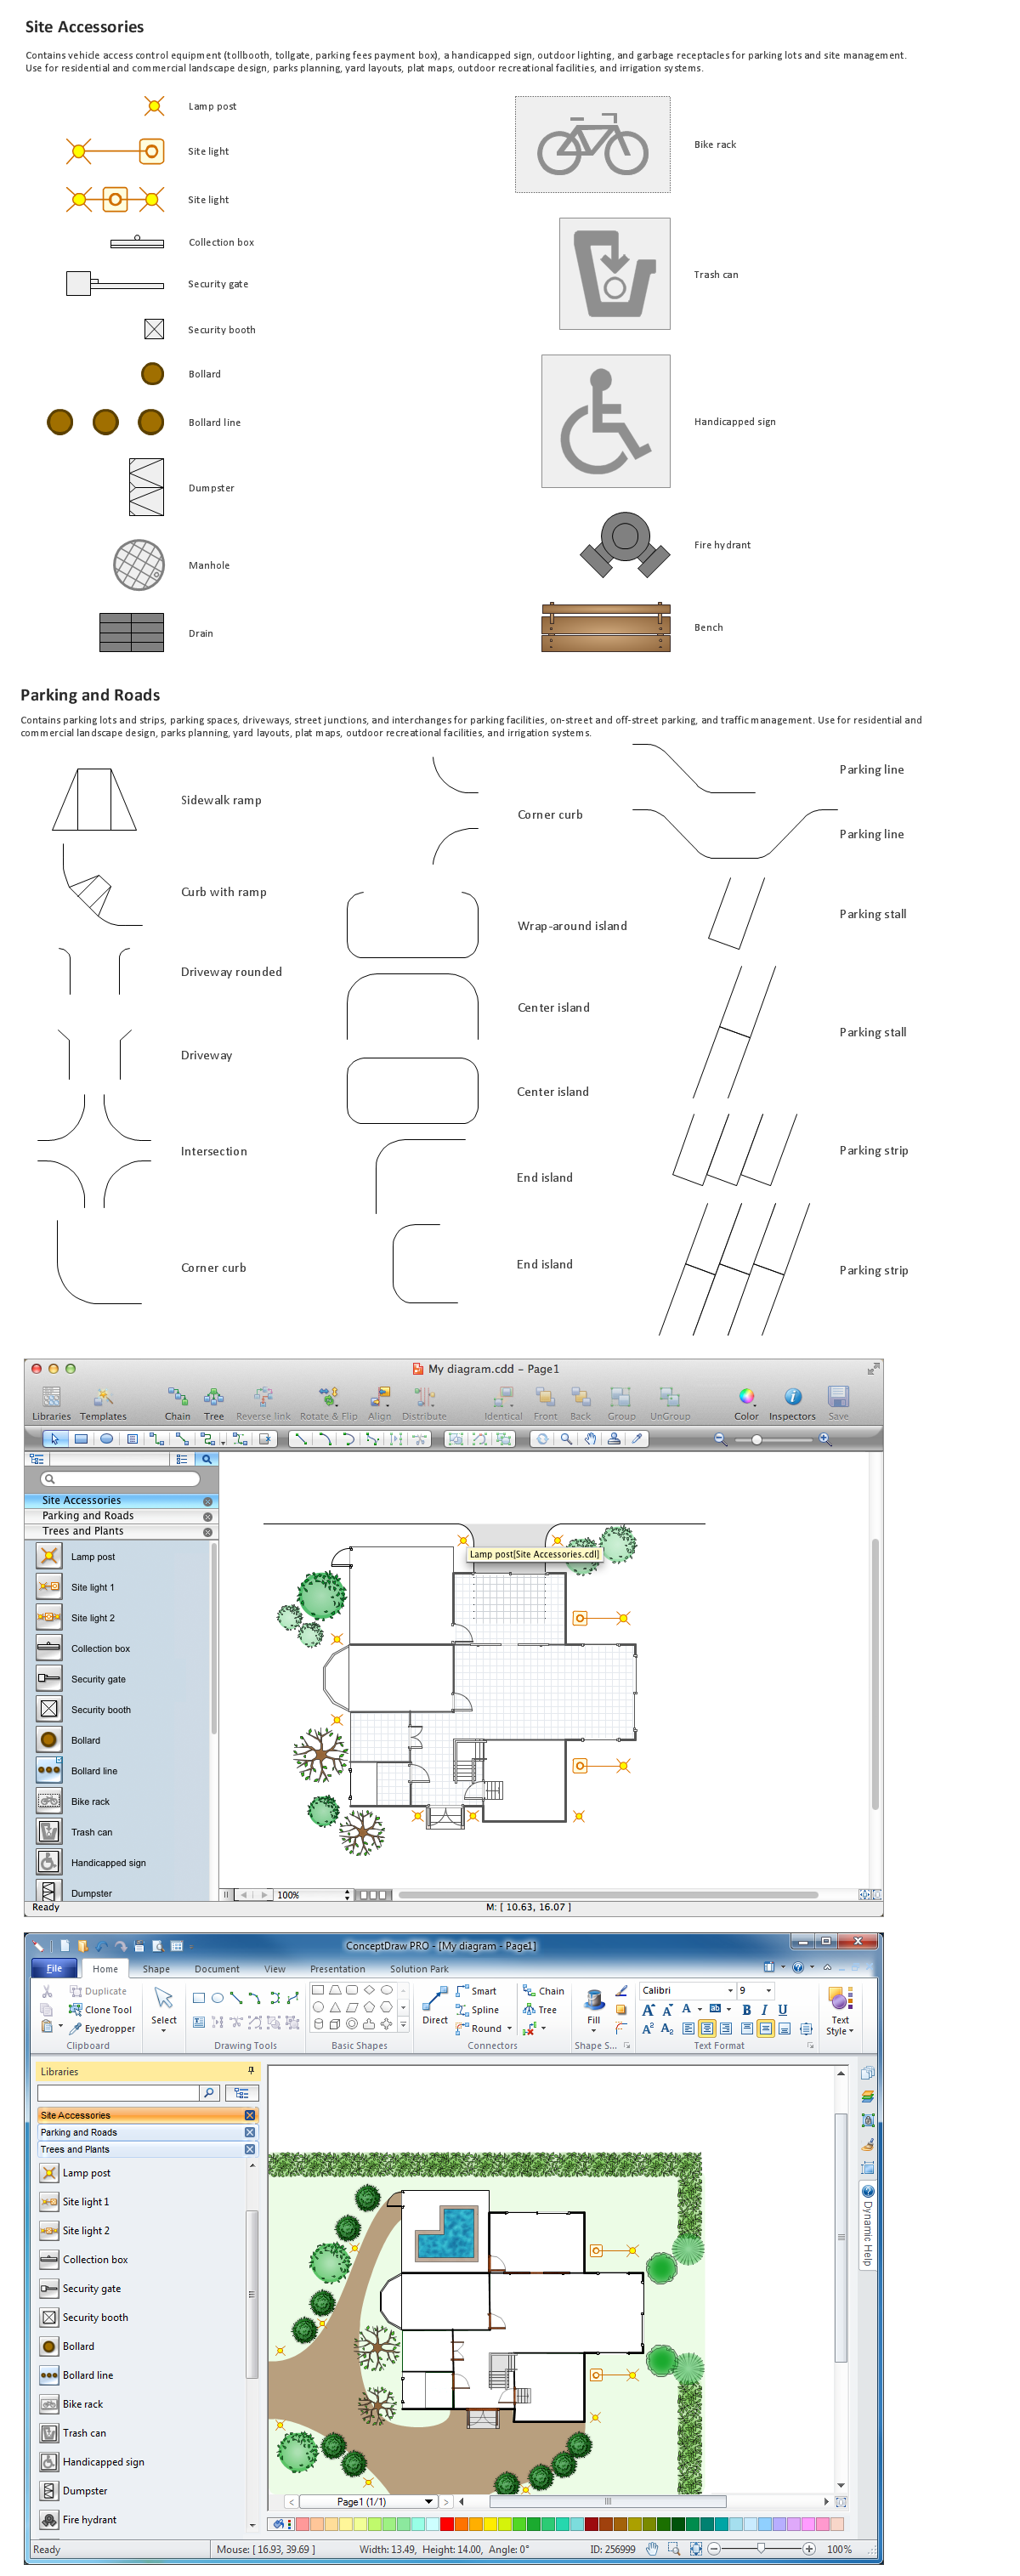 Cafe And Restaurant Floor Plans How To Create Restaurant Floor Plan In Minutes Landscape Garden Layout Of Garden With Its Components